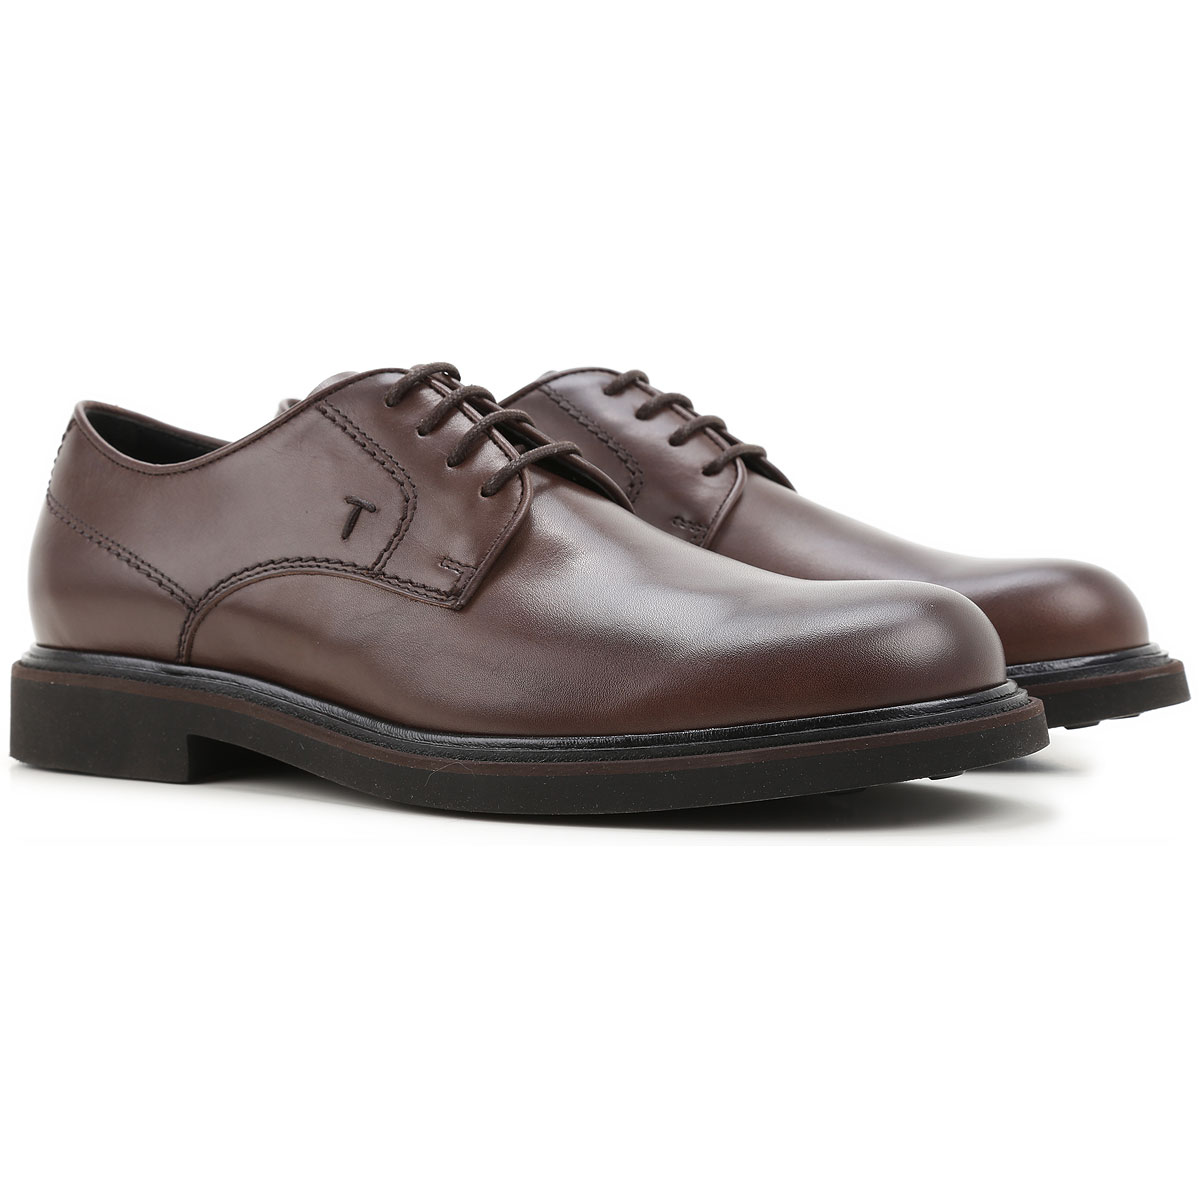 Tods Lace Up Shoes for Men Oxfords Derbies and Brogues On Sale SE - GOOFASH